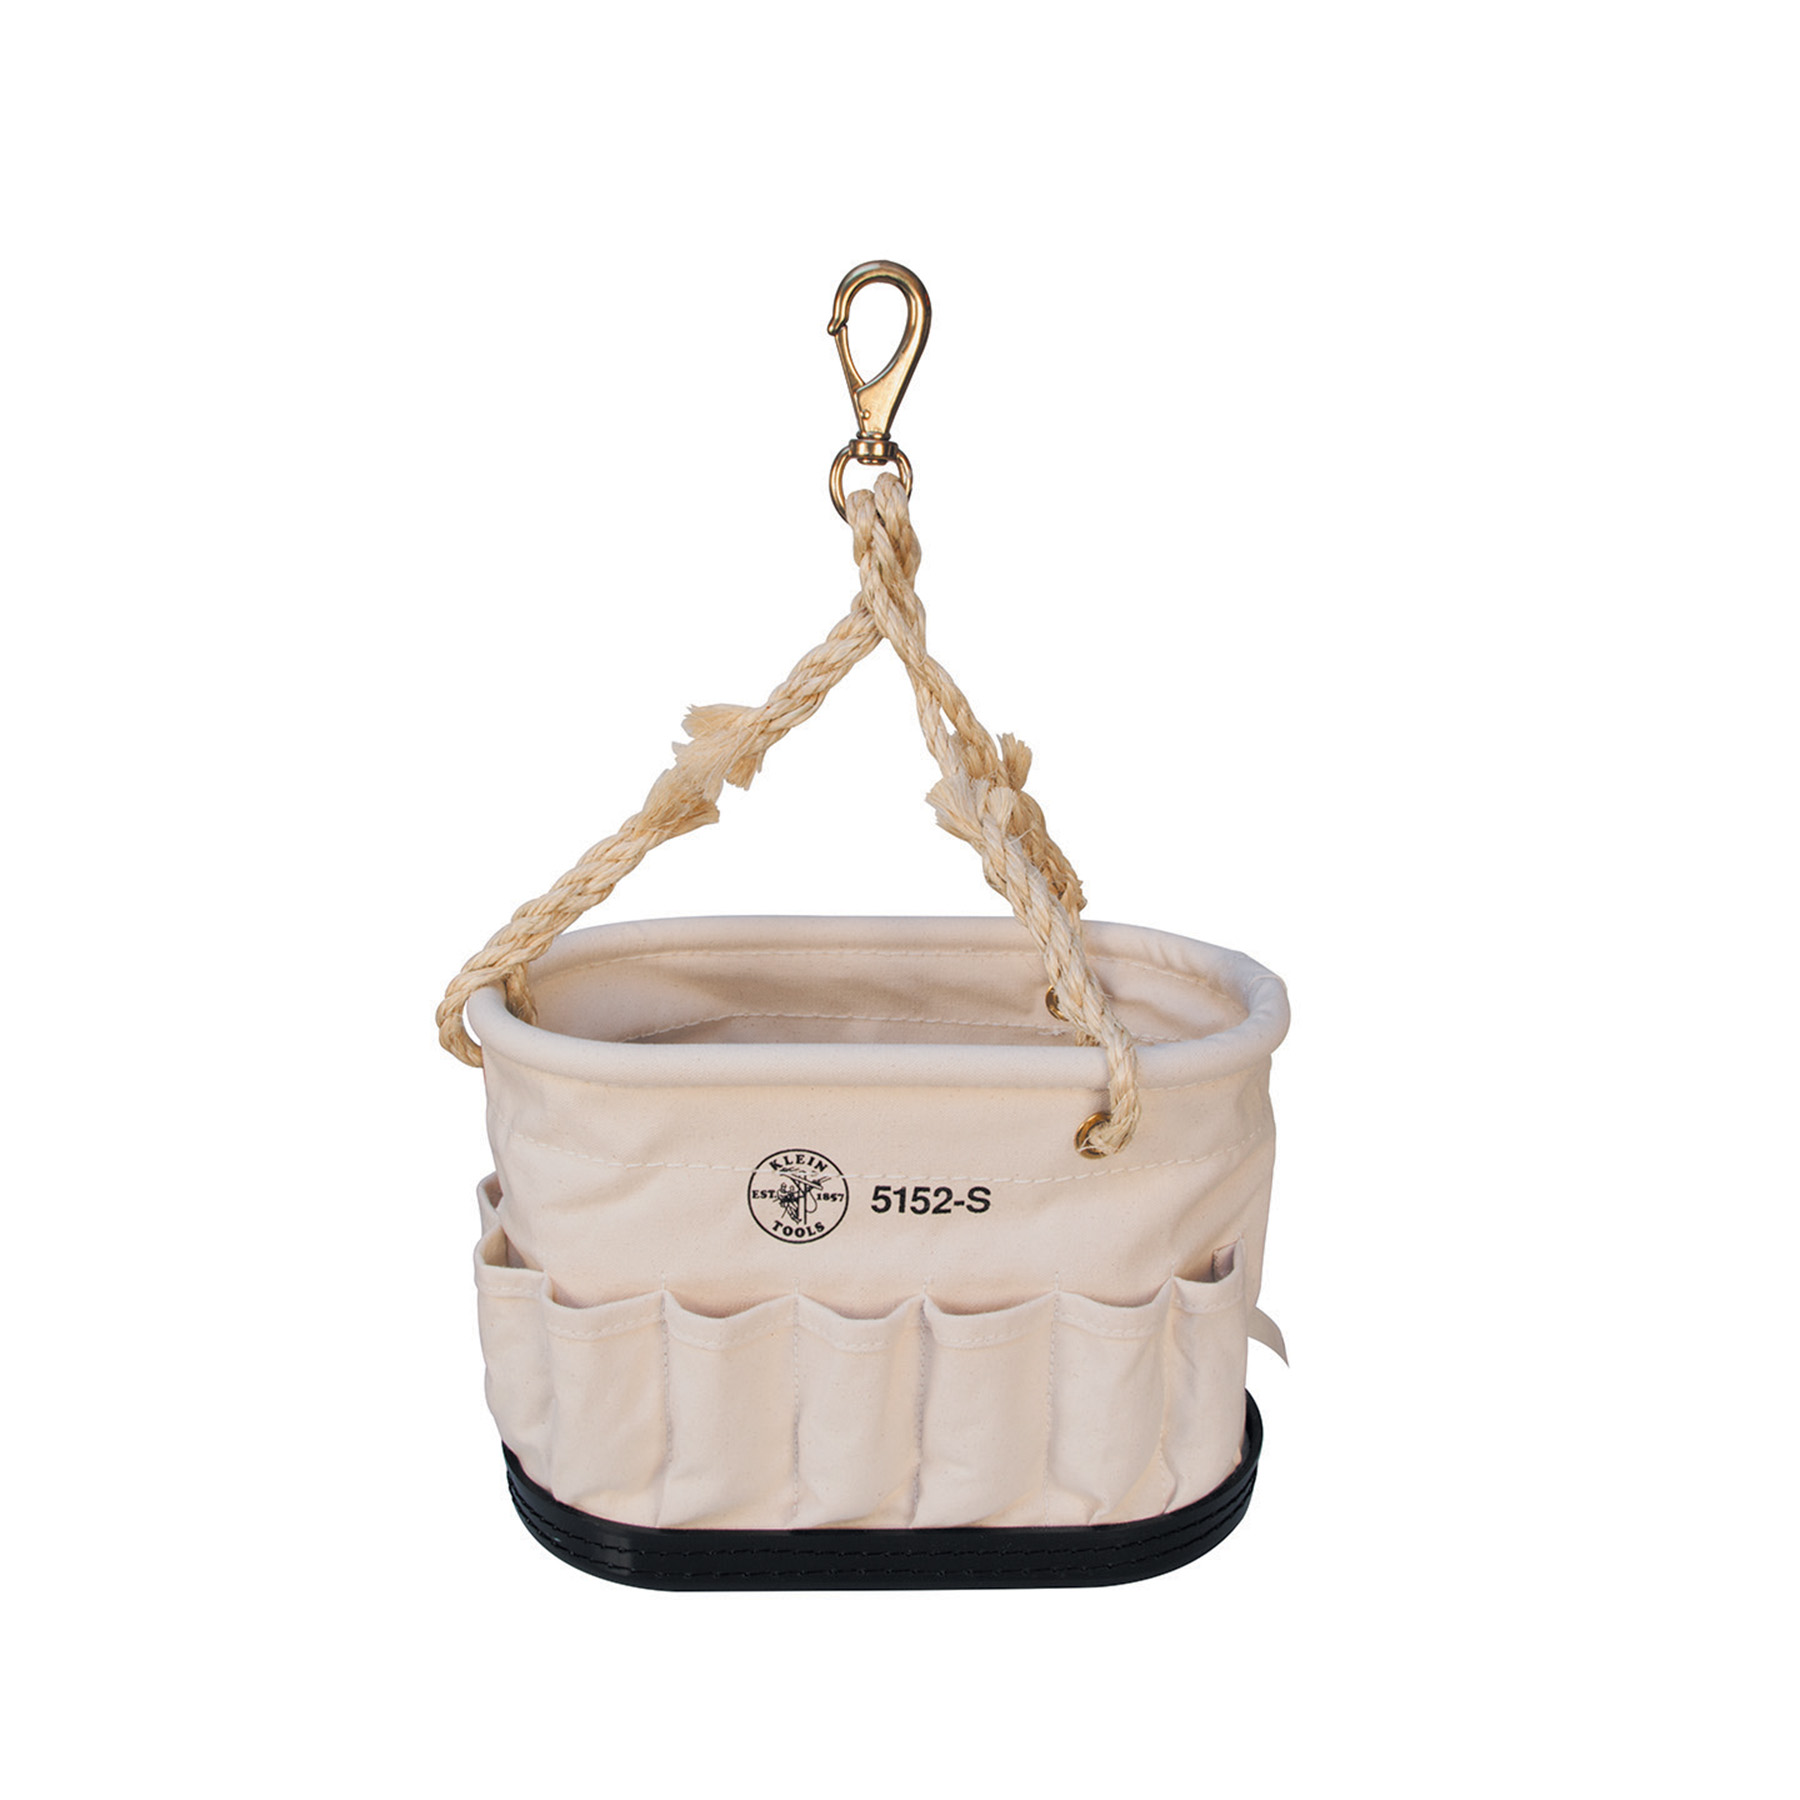 Klein Oval Bucket with 41 Pockets